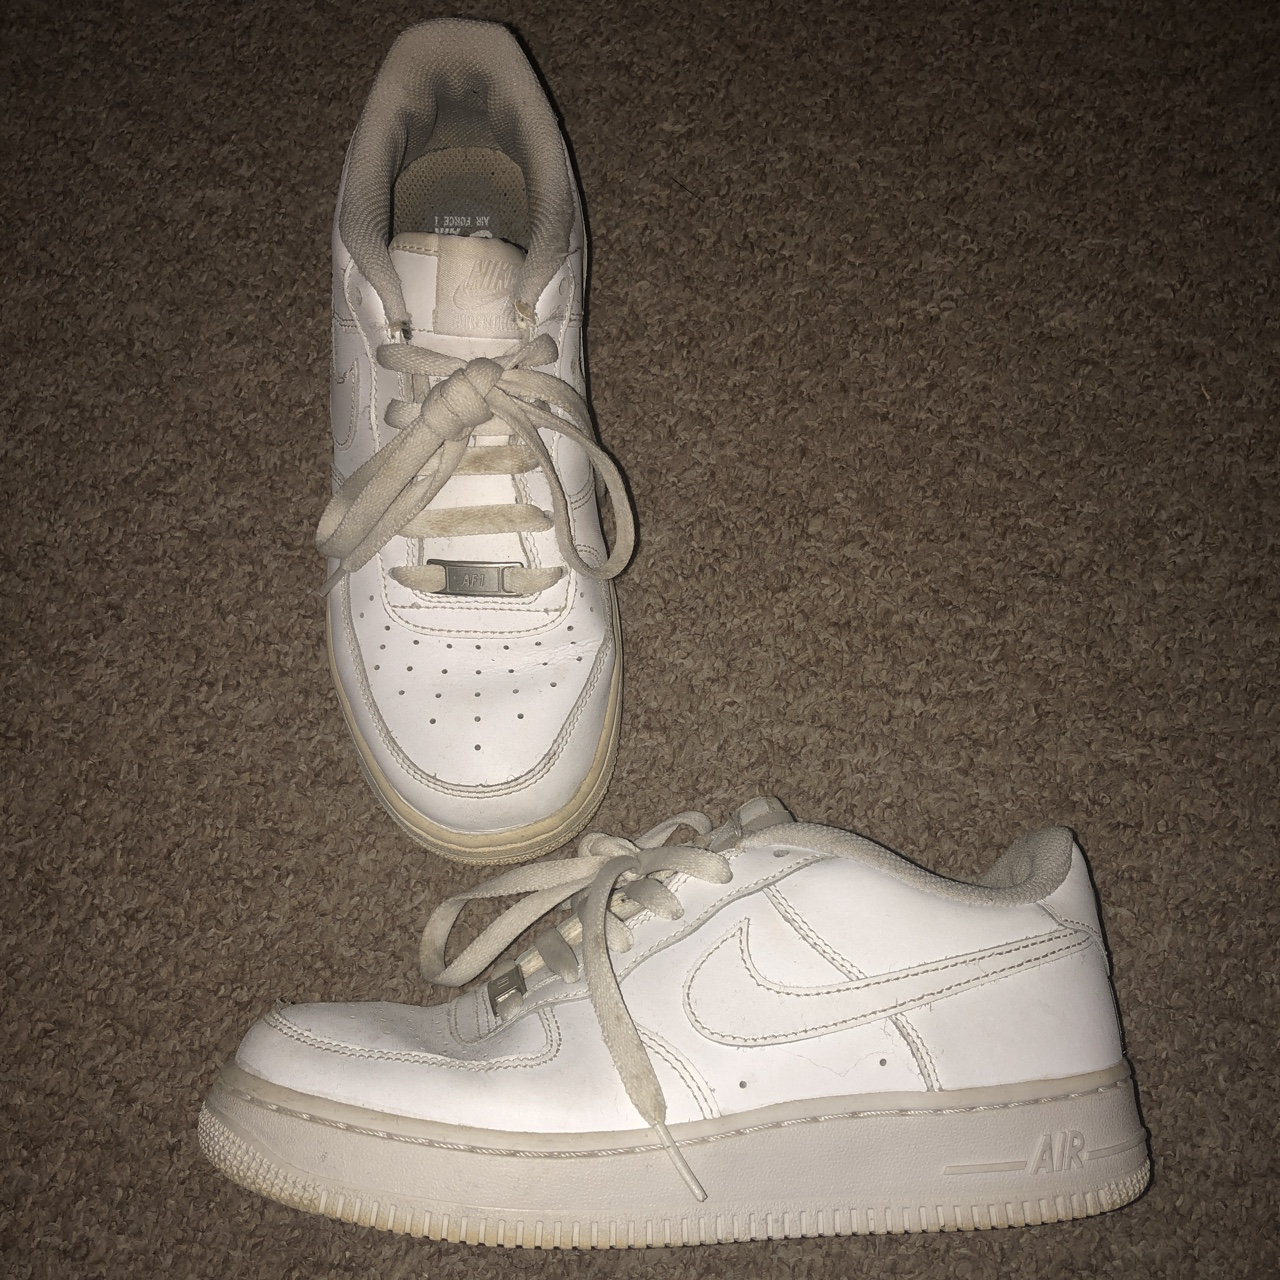 WITH NEW LACES WOULD LOOK CLEAN NIKE AIR FORCE 1 Depop